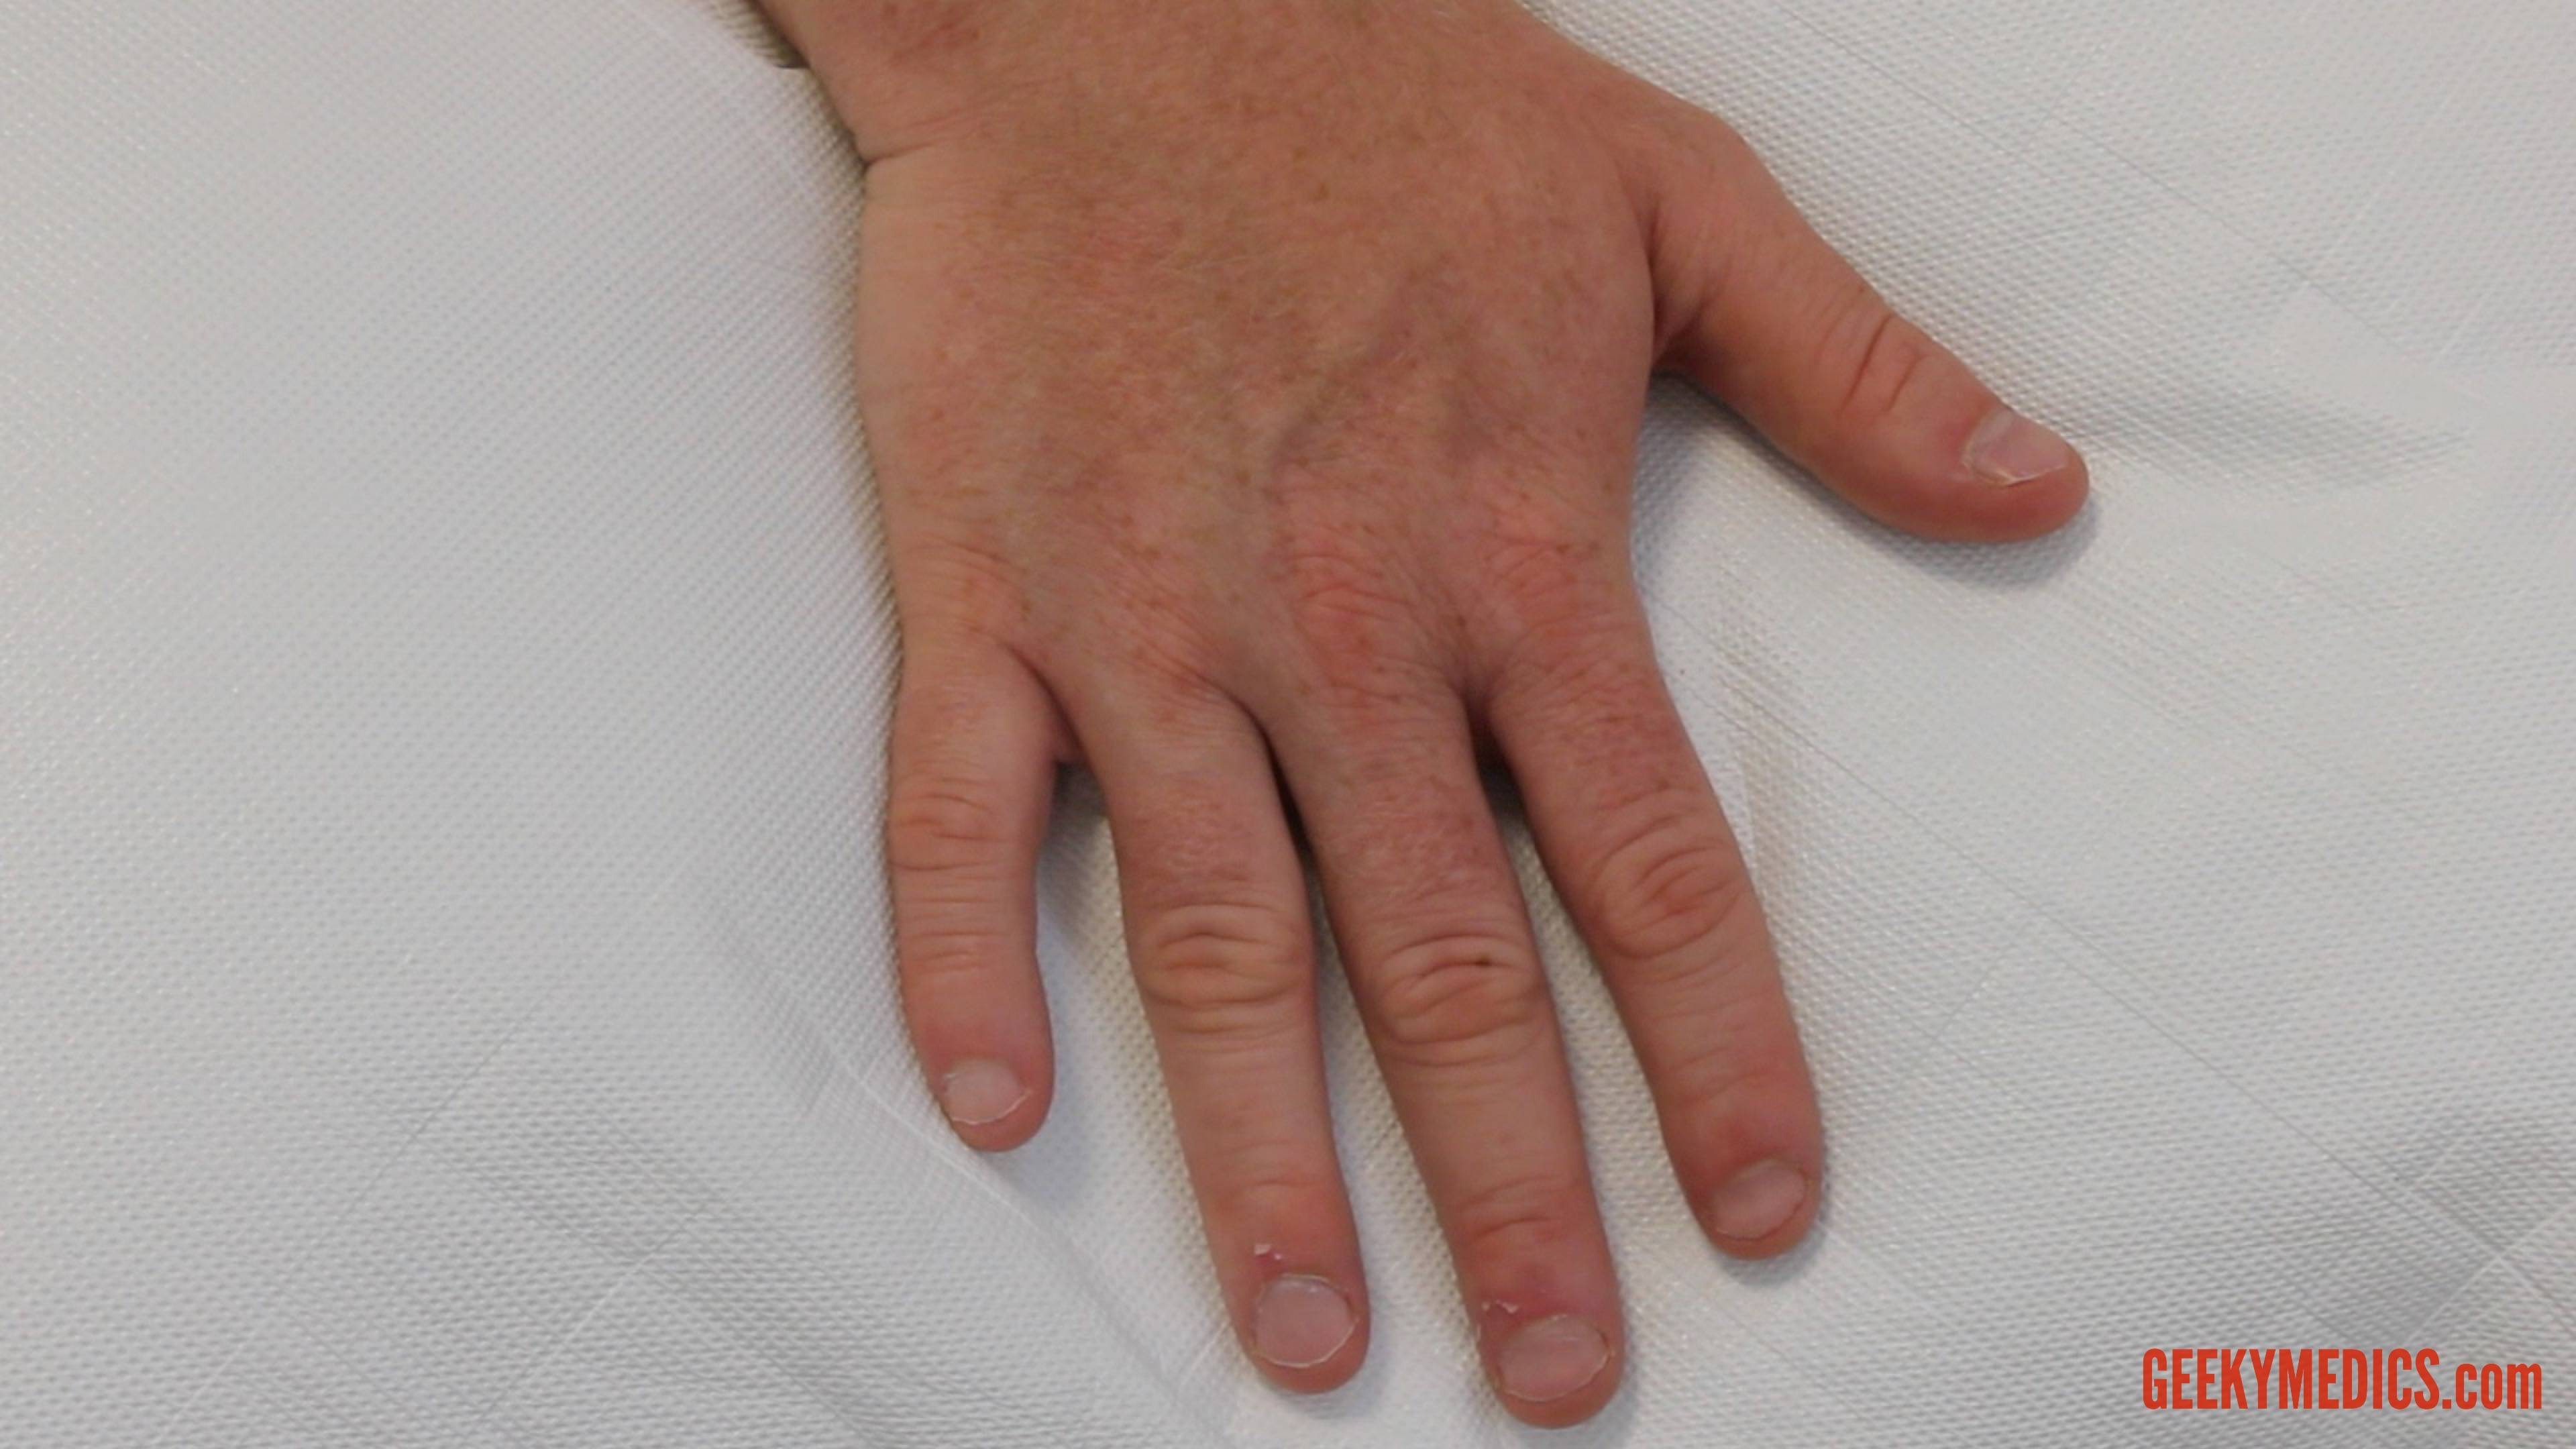 psoriasis on palms of hands